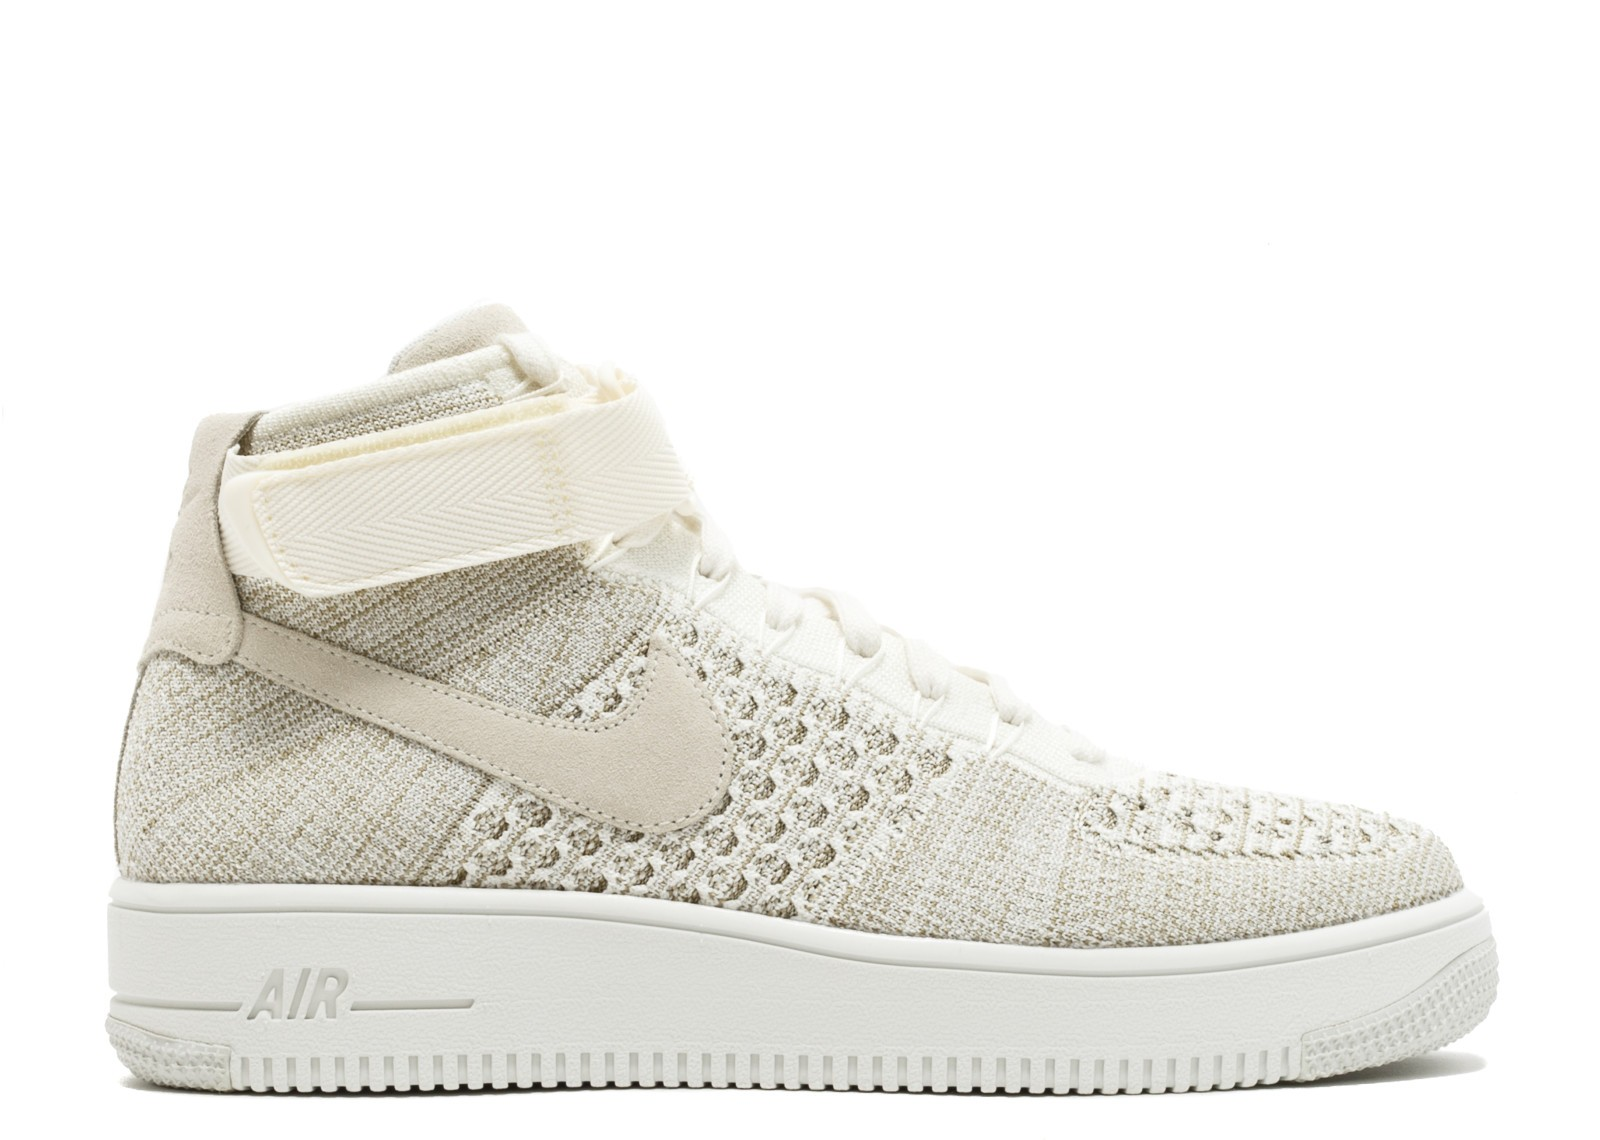 Nike Air Force 1 Mid Flyknit (Sail/Sail/Grises) 817420-101